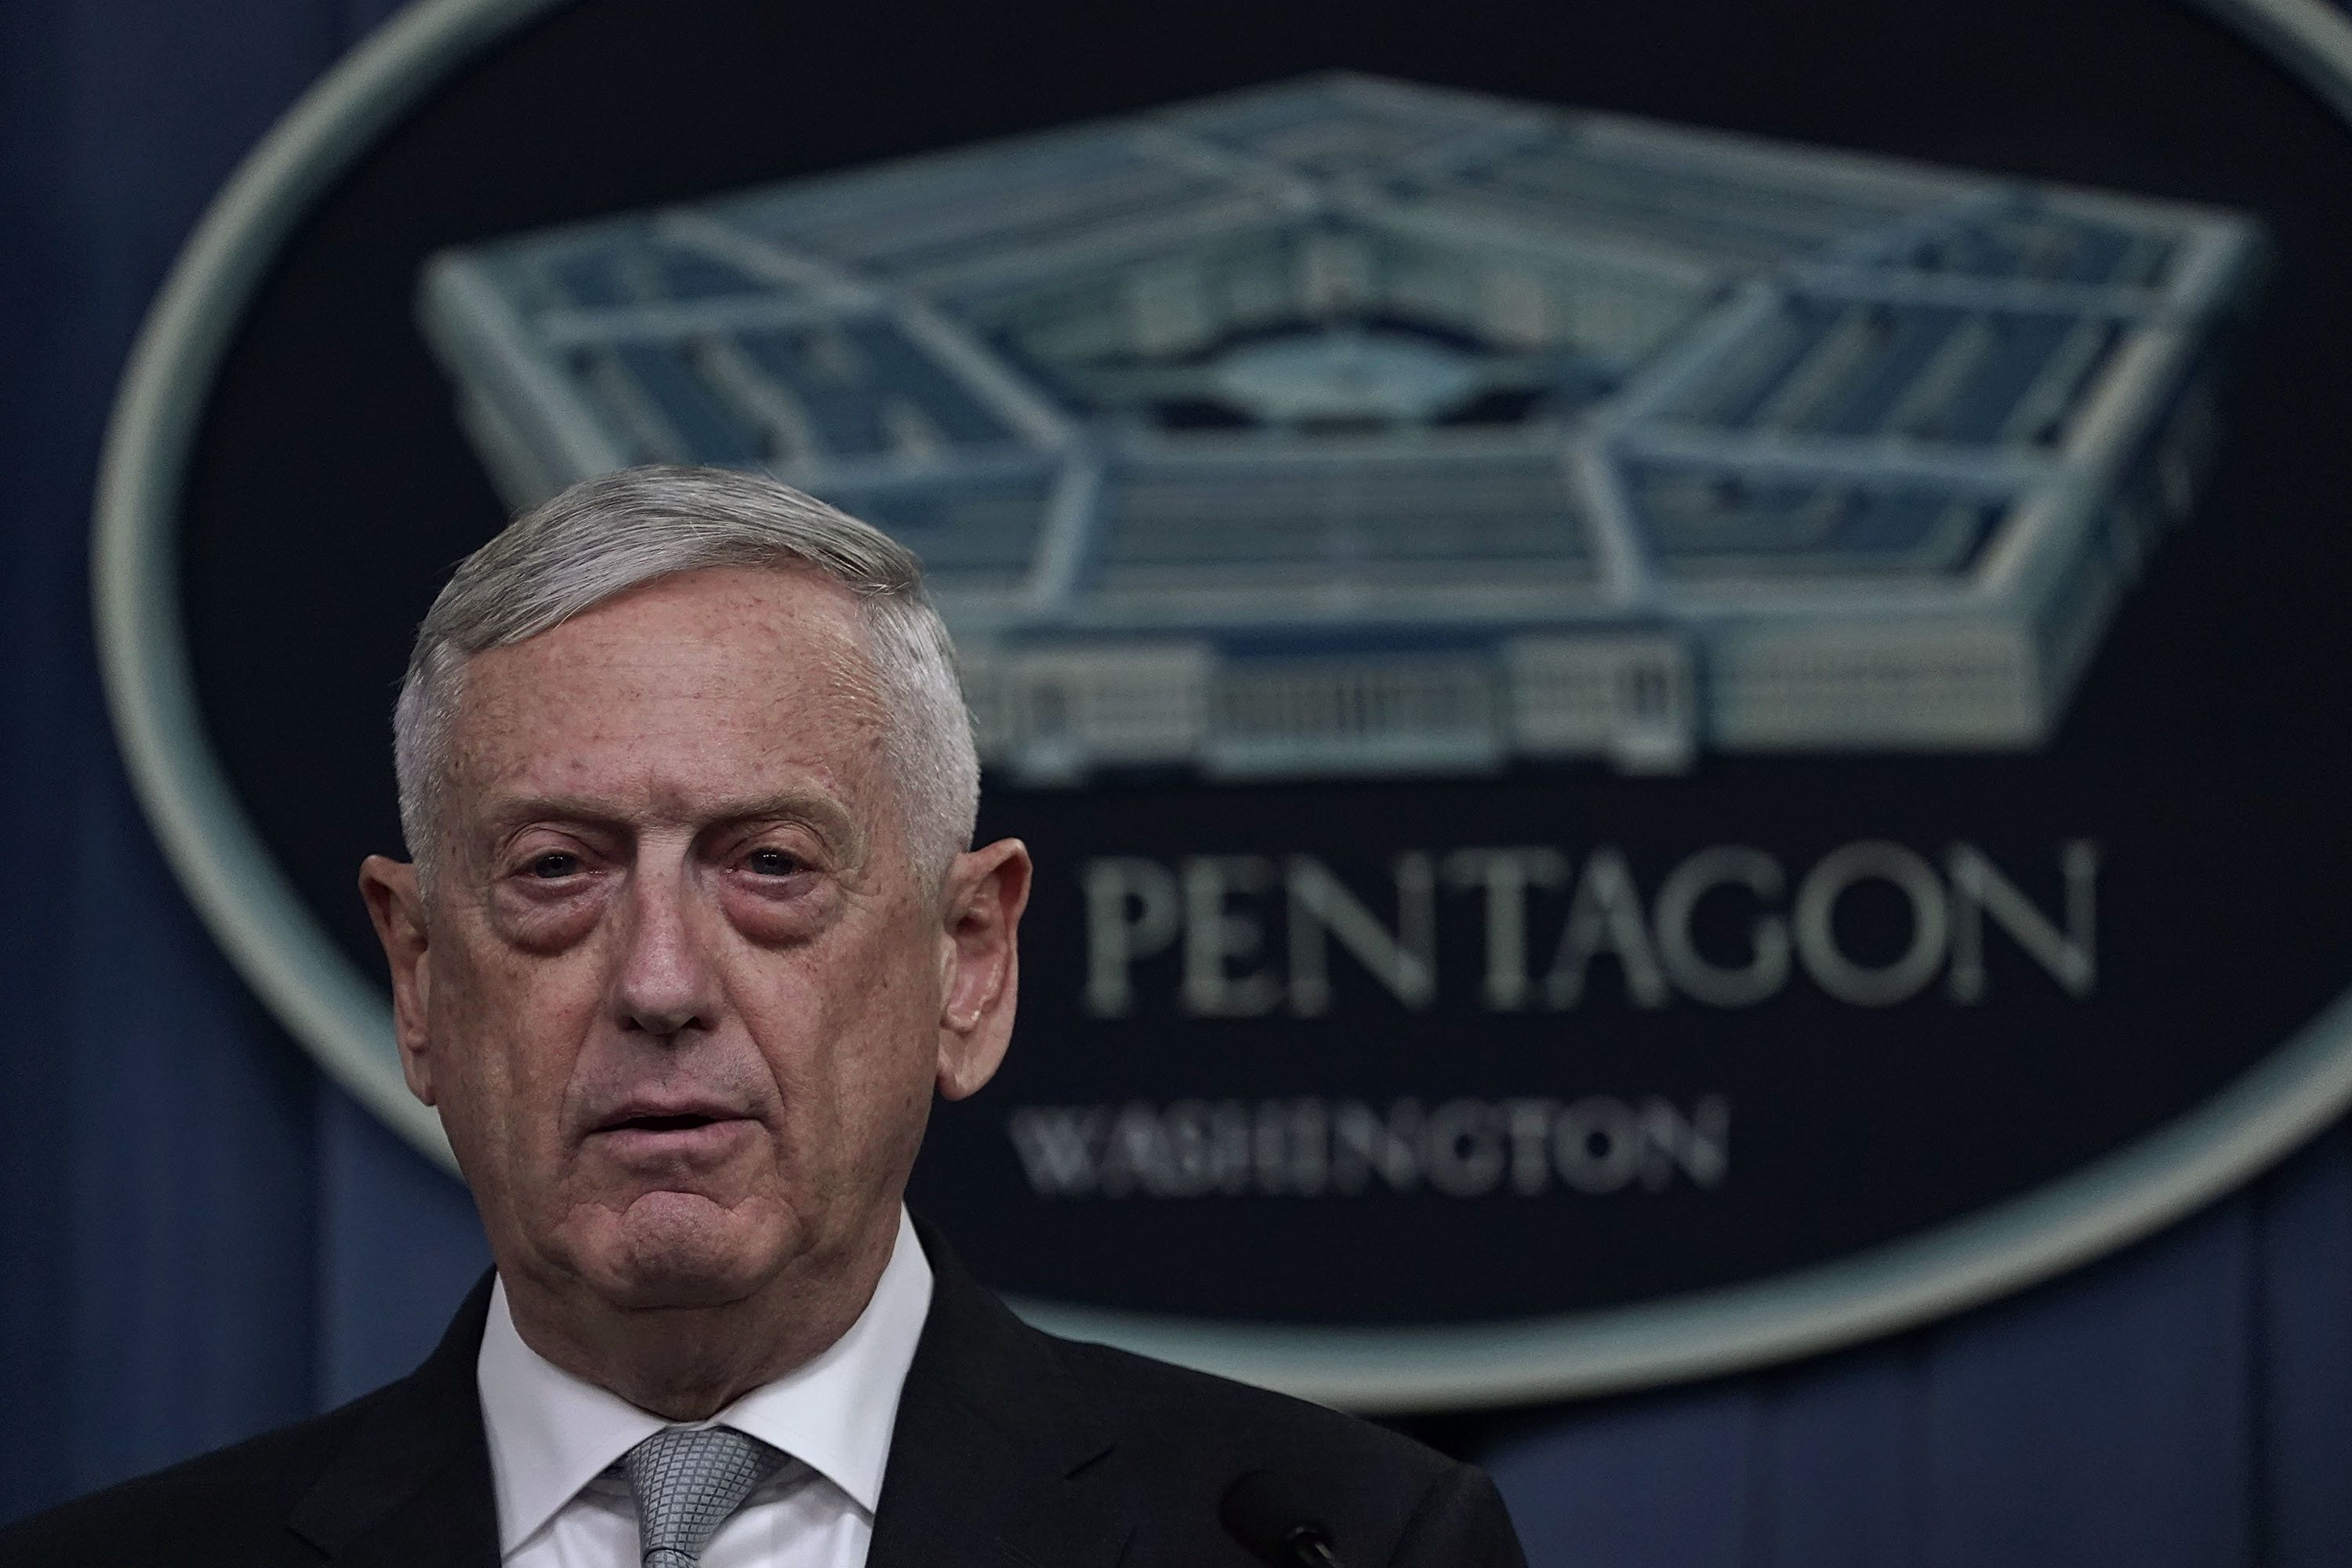 Defense Secretary Jim Mattis briefs members of the media on the Syria airstrikes at the Pentagon on Friday night